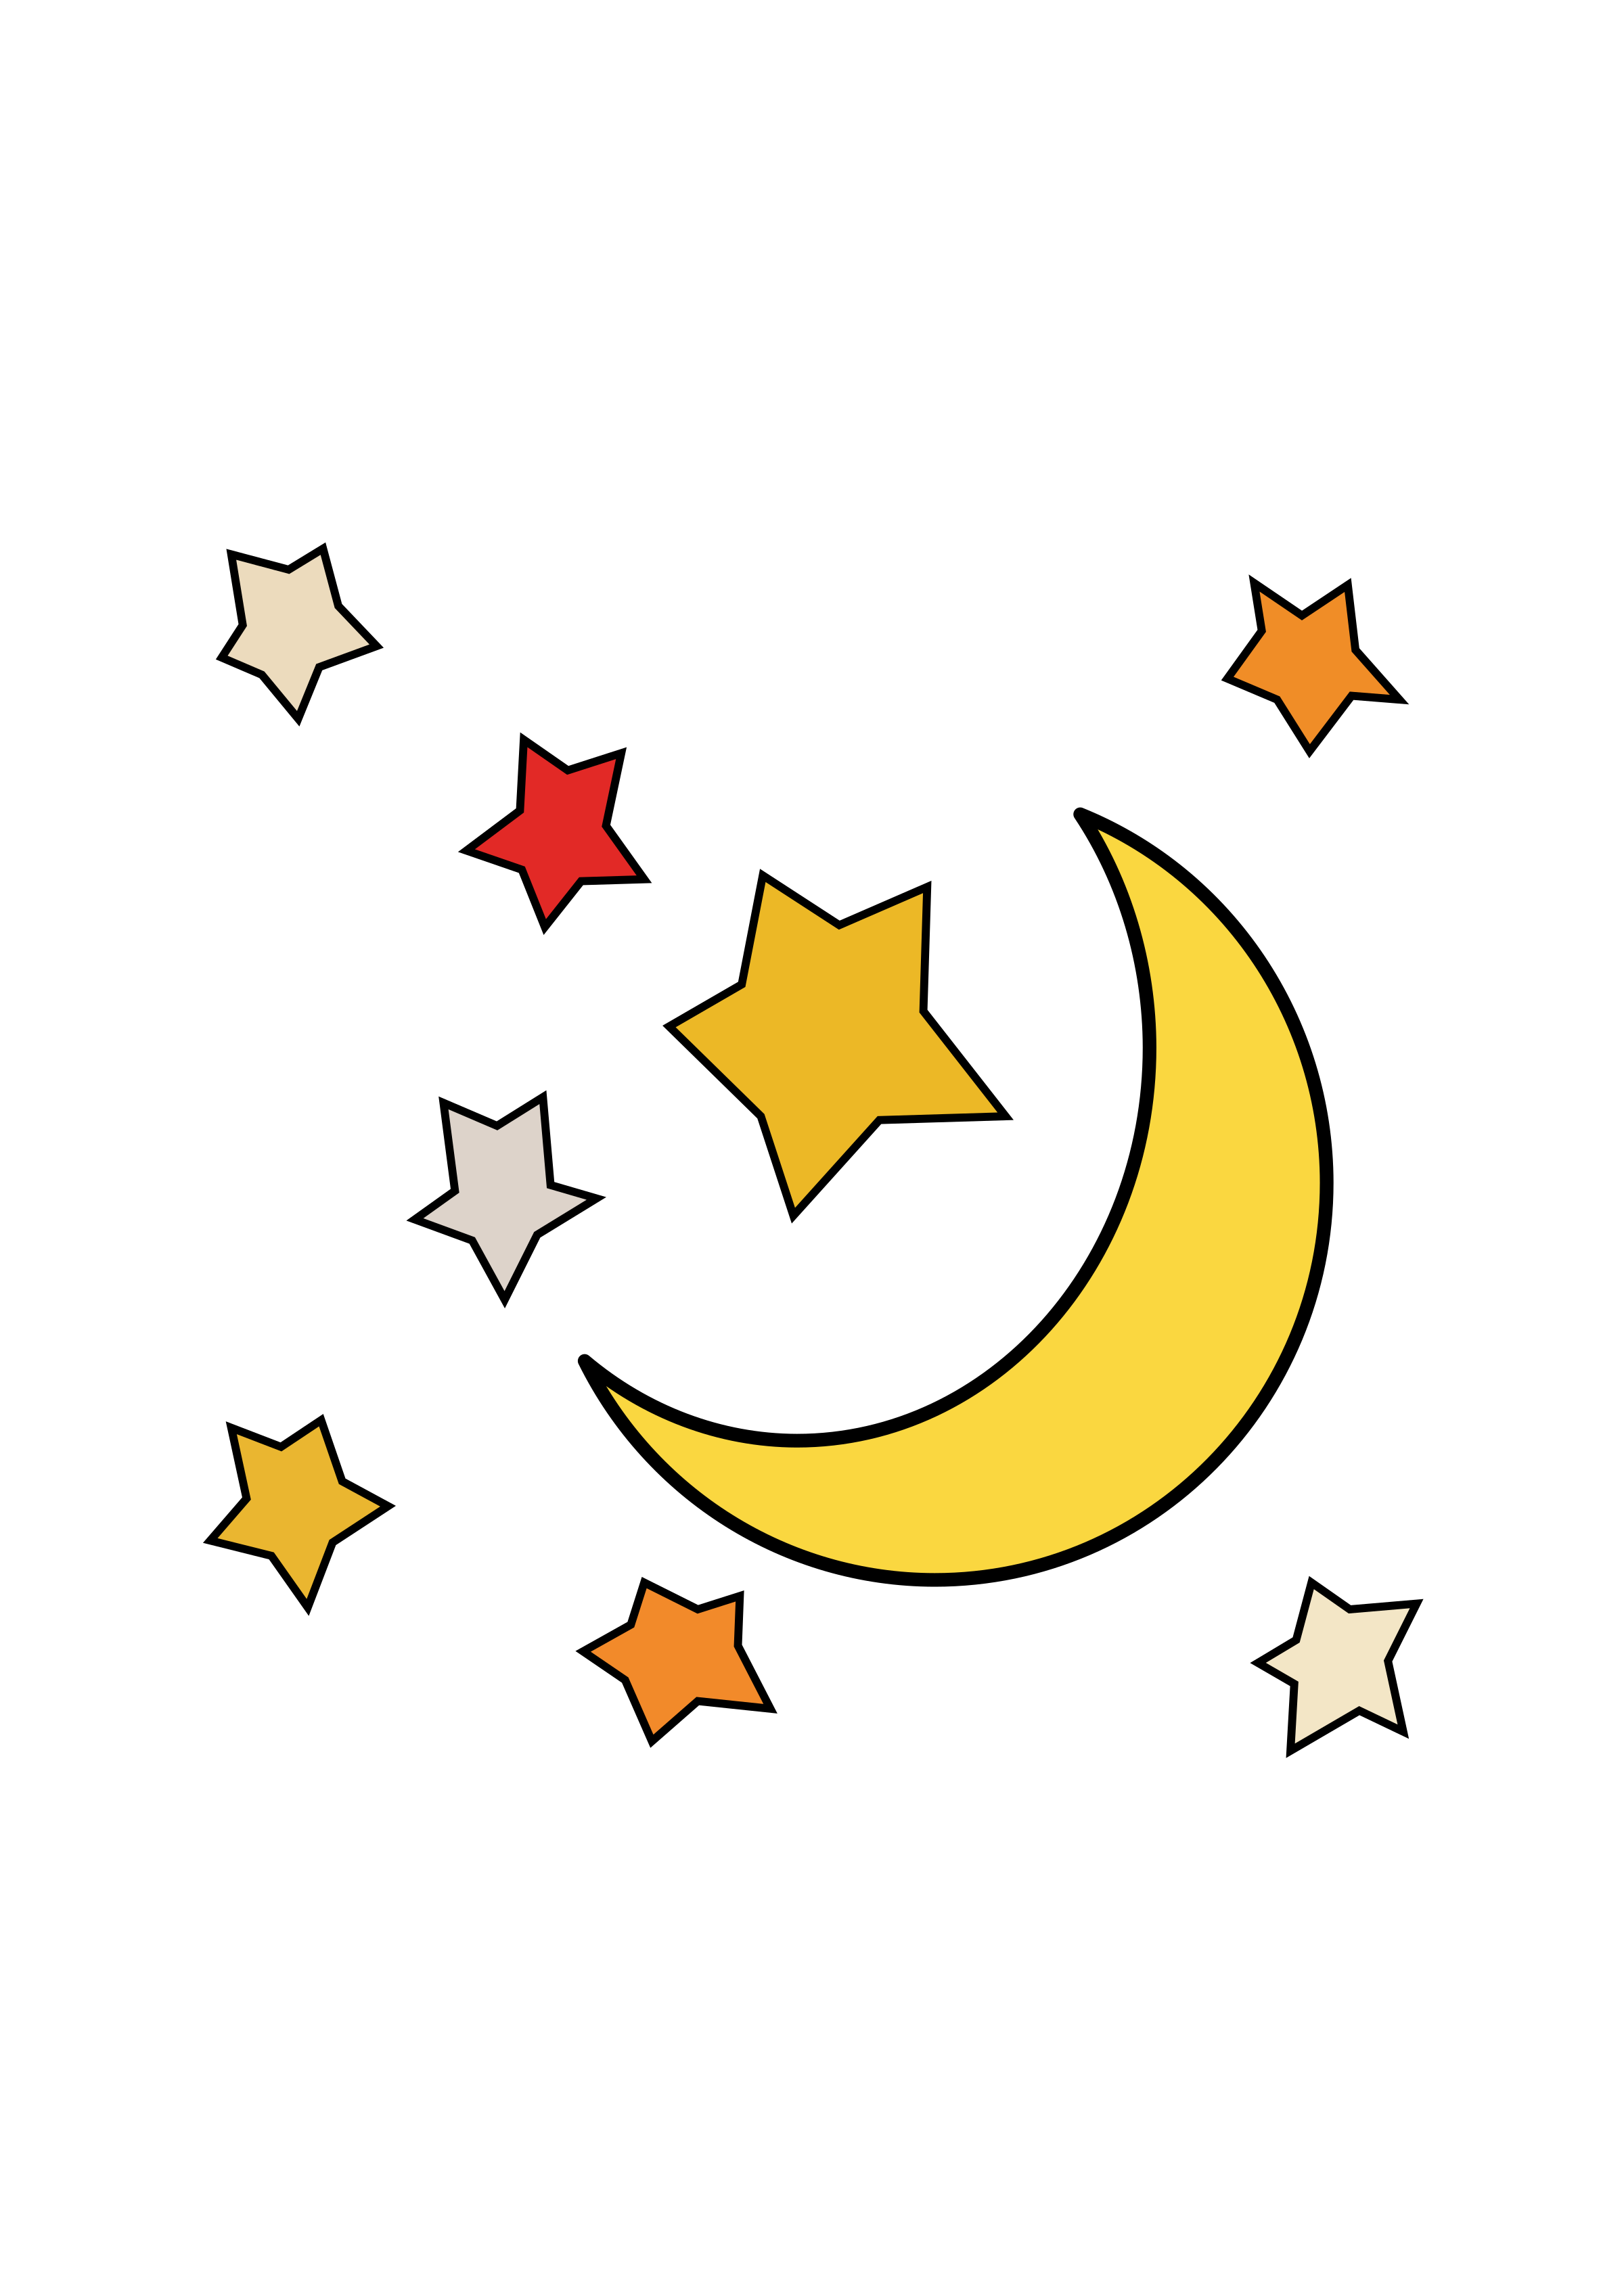 sun moon clipart at getdrawings com free for personal use sun moon rh getdrawings com moon and stars clip art free moon and stars clipart free